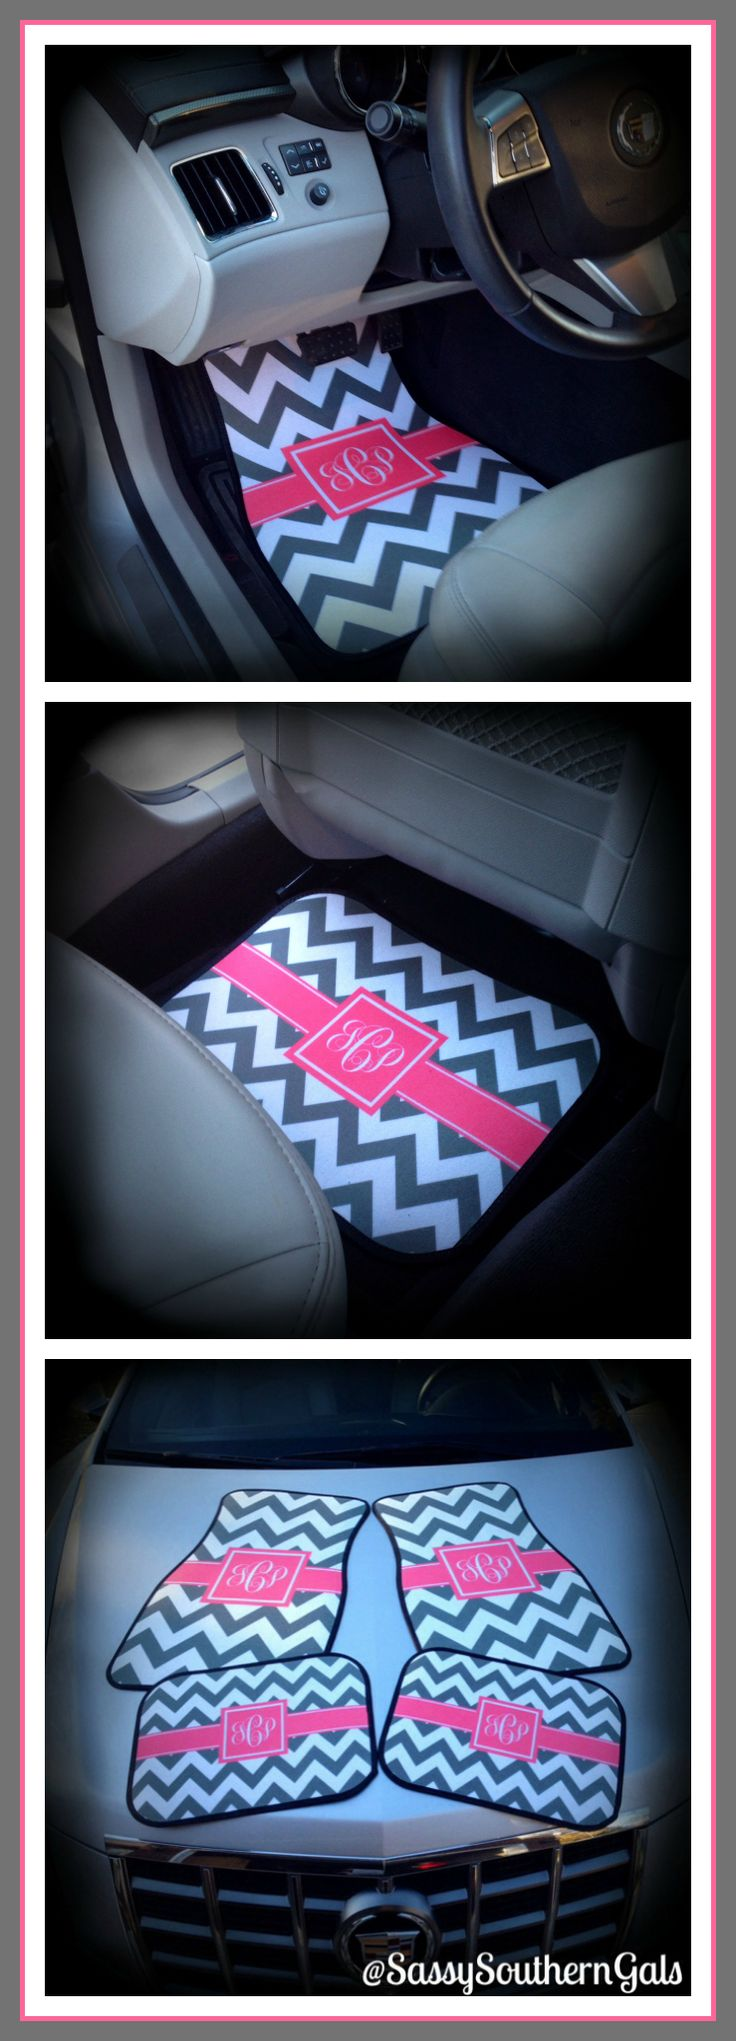 Gone too far: Preppy monogrammed floor mats. Excuse me while I wrech.